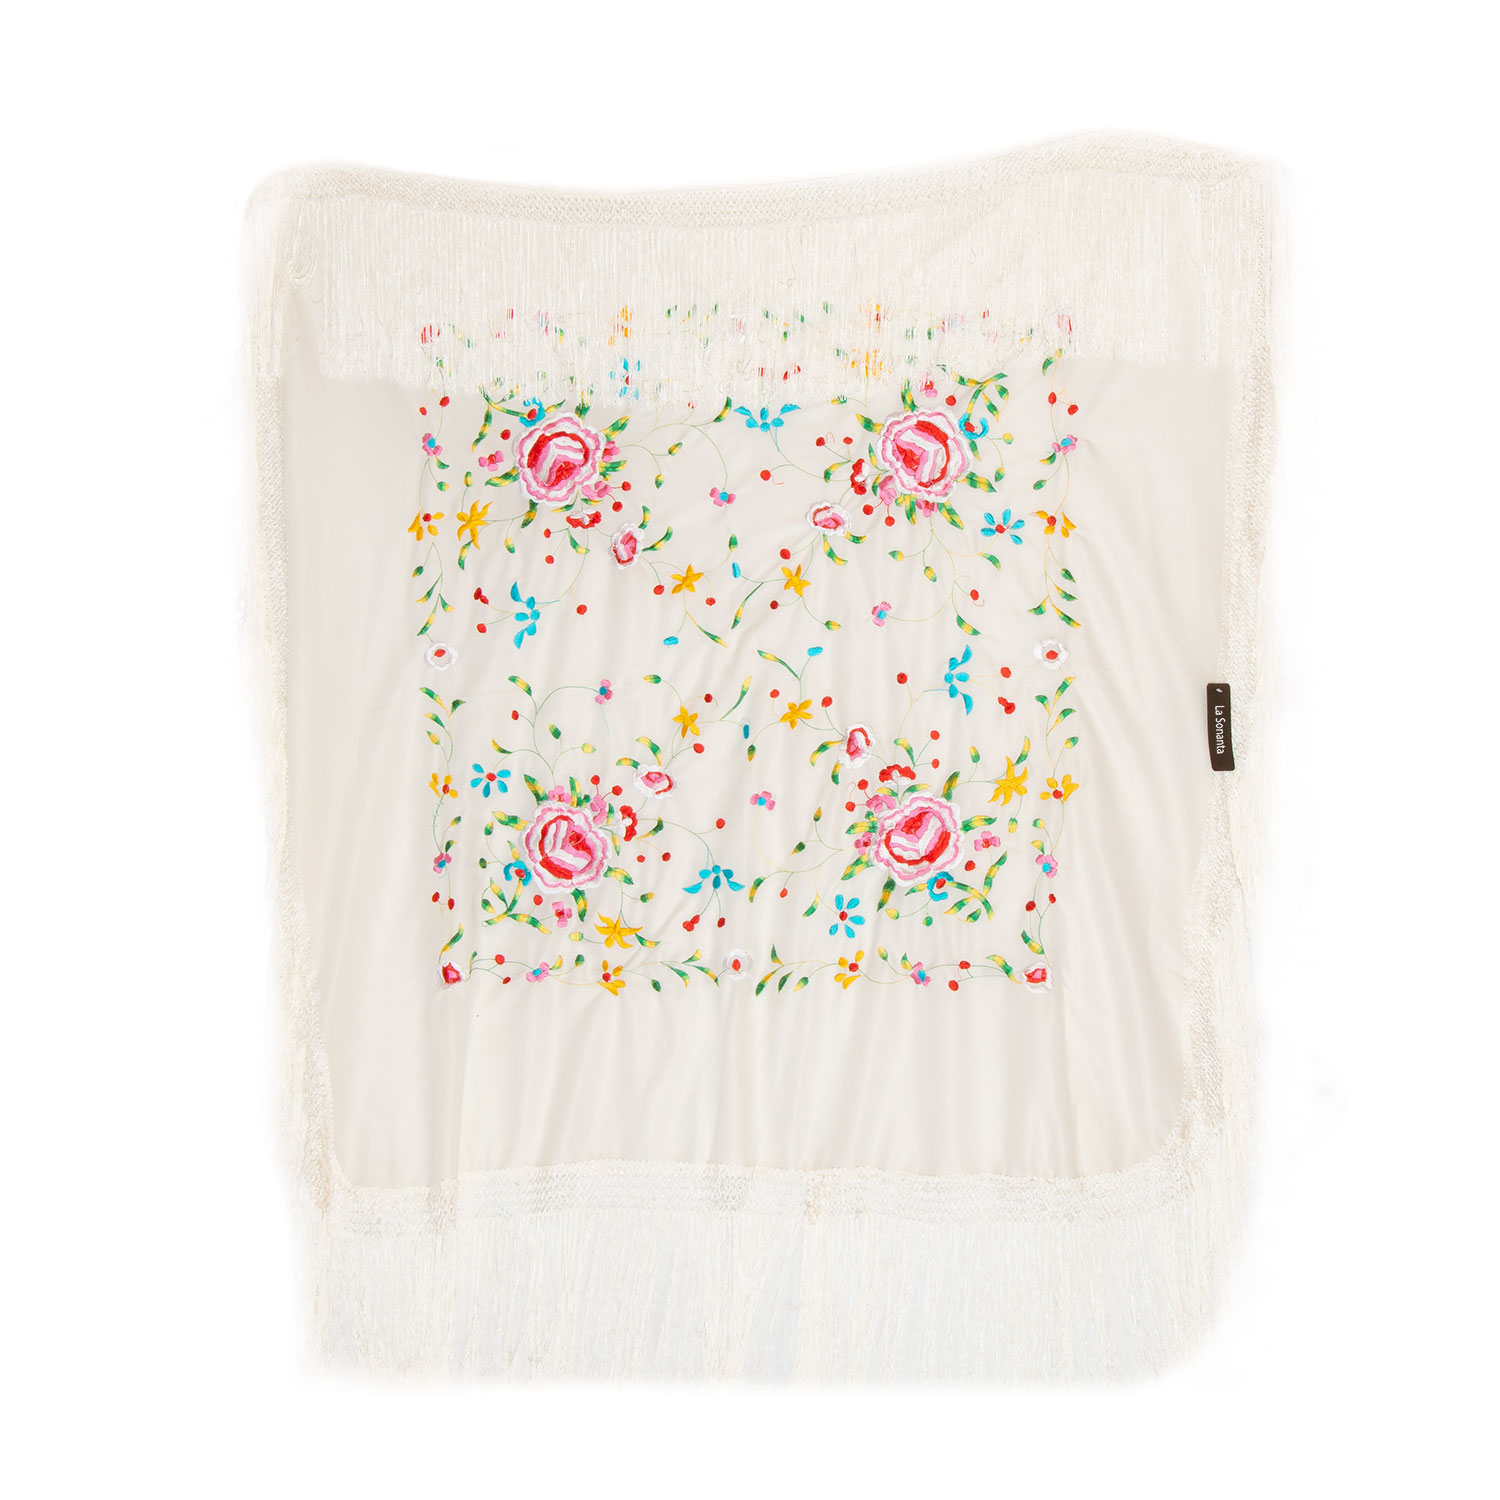 White silk shawl 120 x 120 with handmade embroideries